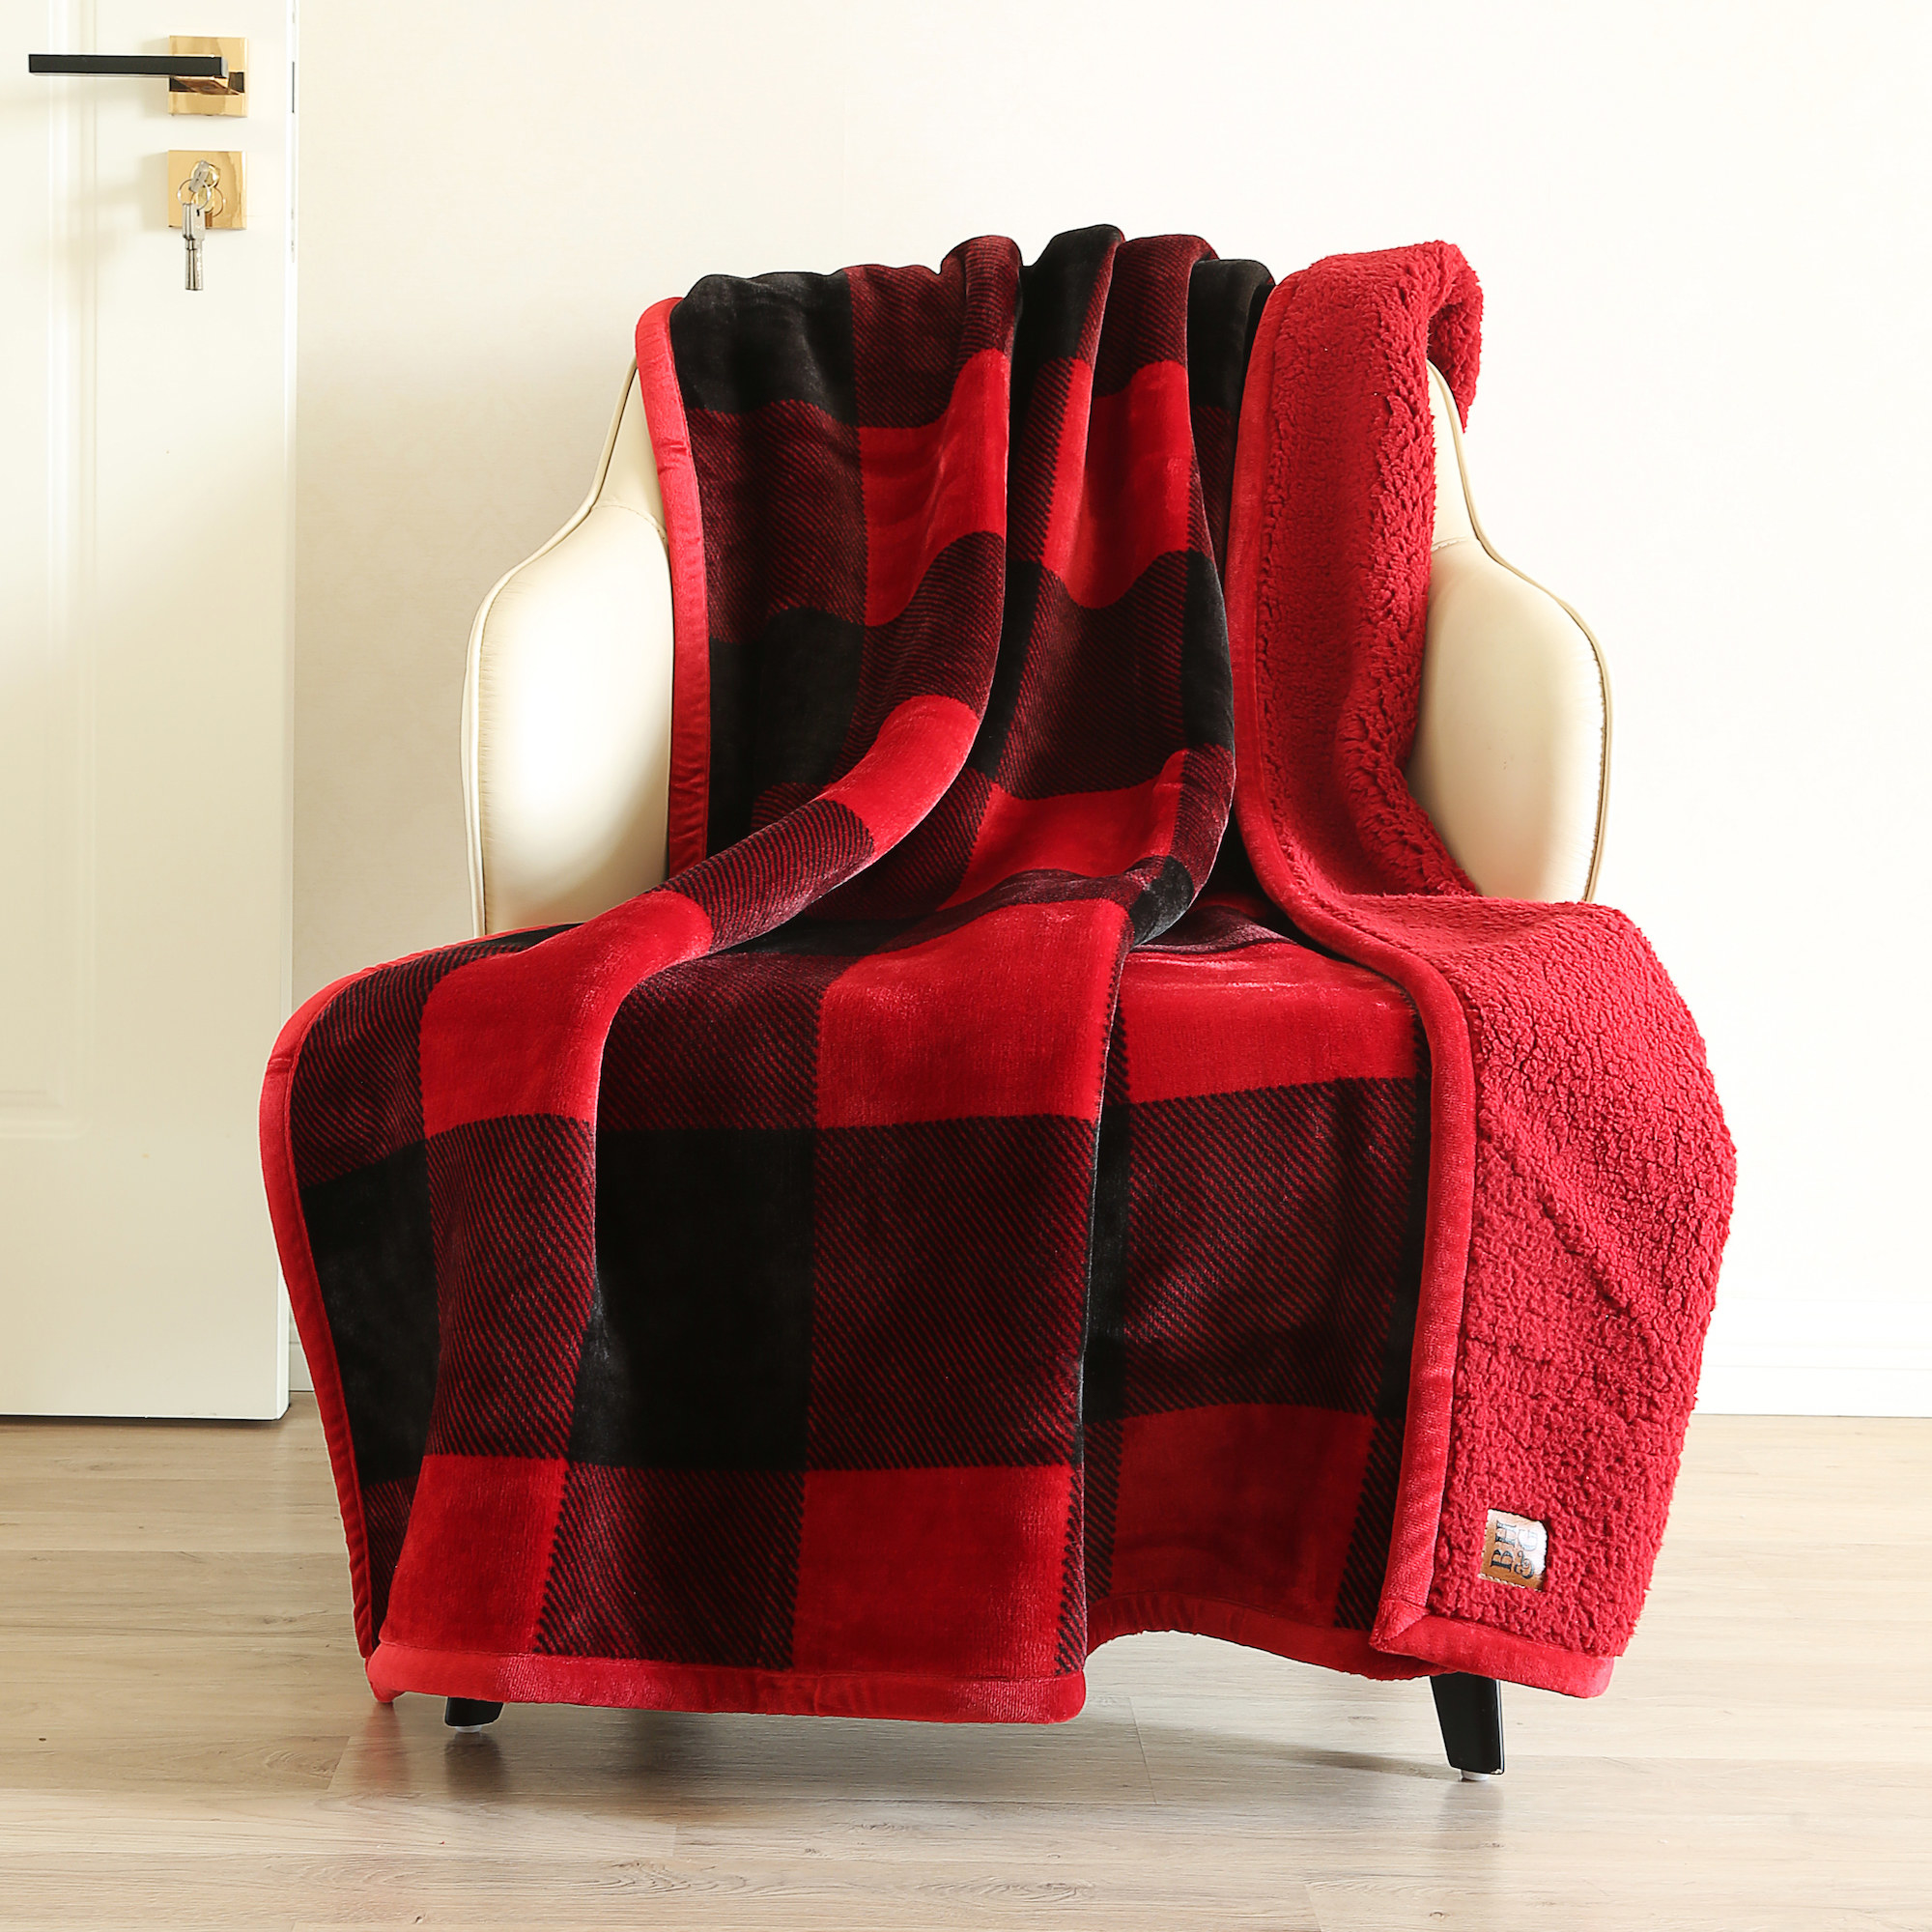 The red checkered throw draped over a chair to show its texture